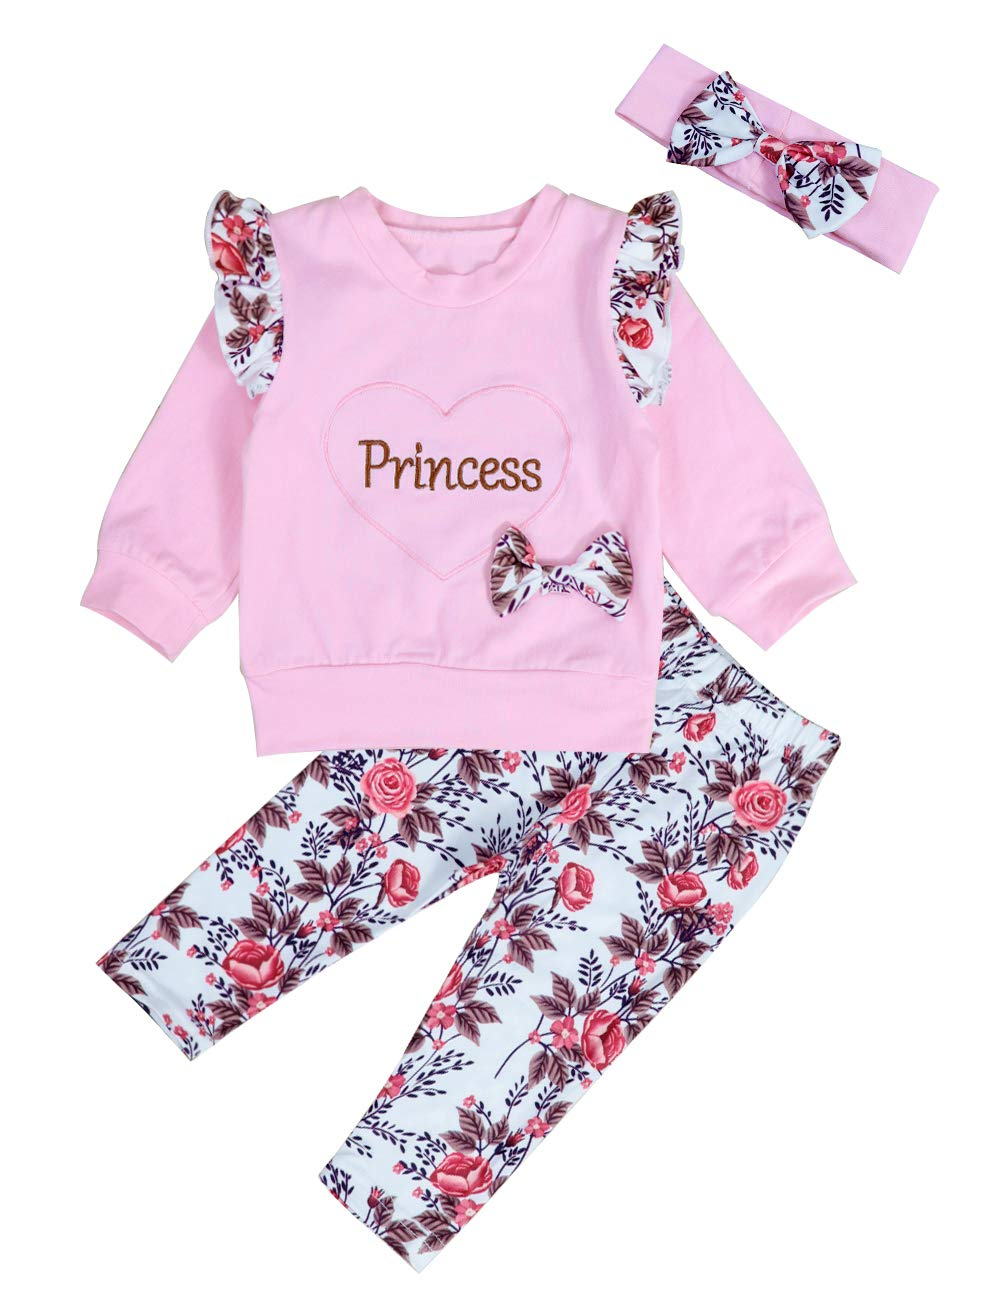 Zerototens Girls Clothes Set for 1-5 Years Old Toddler Baby Pink Long Sleeve Cartoon Swan Print Tops Striped Pants Child Sleepwear Set Kids Outfit